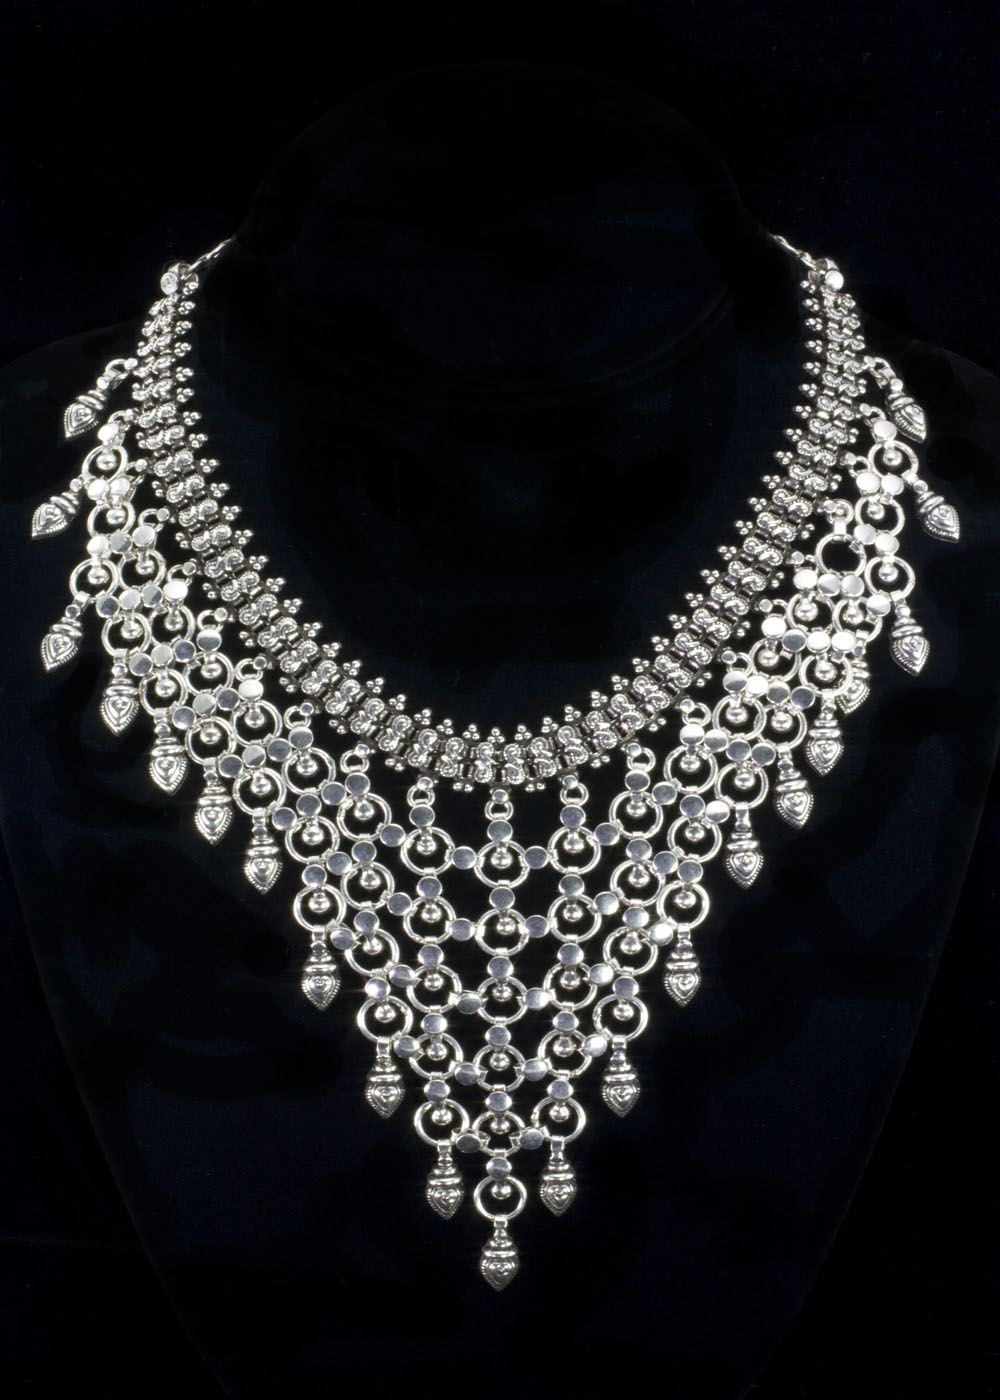 Httpsterlingjewelrystoressterling silver sterling httpsterlingjewelrystoressterling silver sterling chandelier bib necklaceml jewelry pinterest bibs sterling silver and chains aloadofball Images